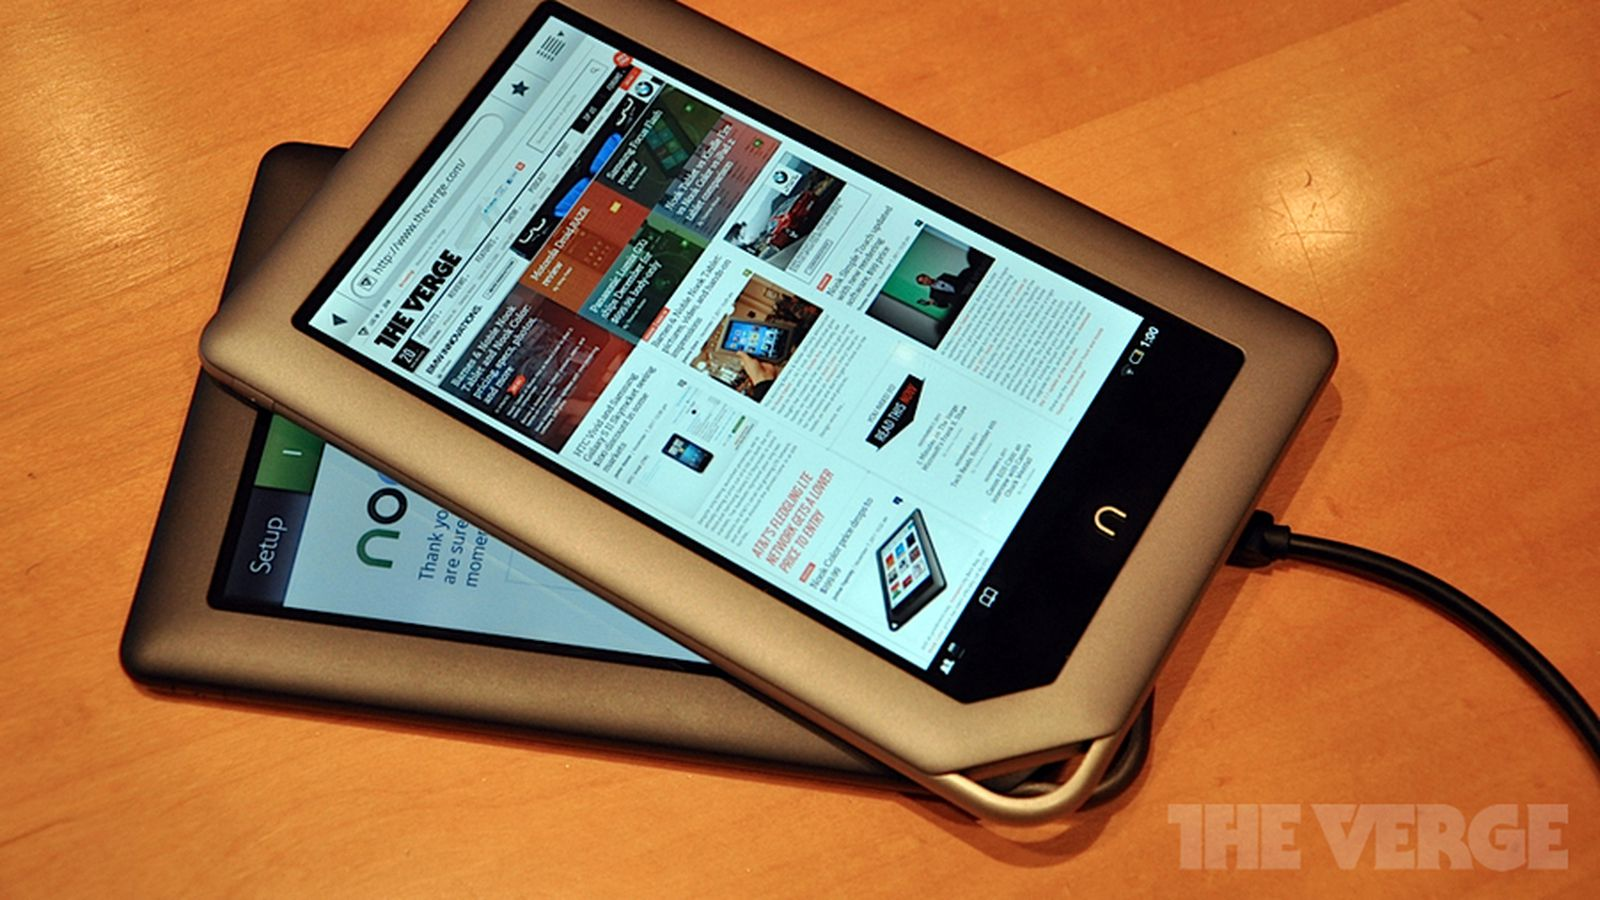 Barnes & Noble is shutting down the Nook App Store on March 15th ...